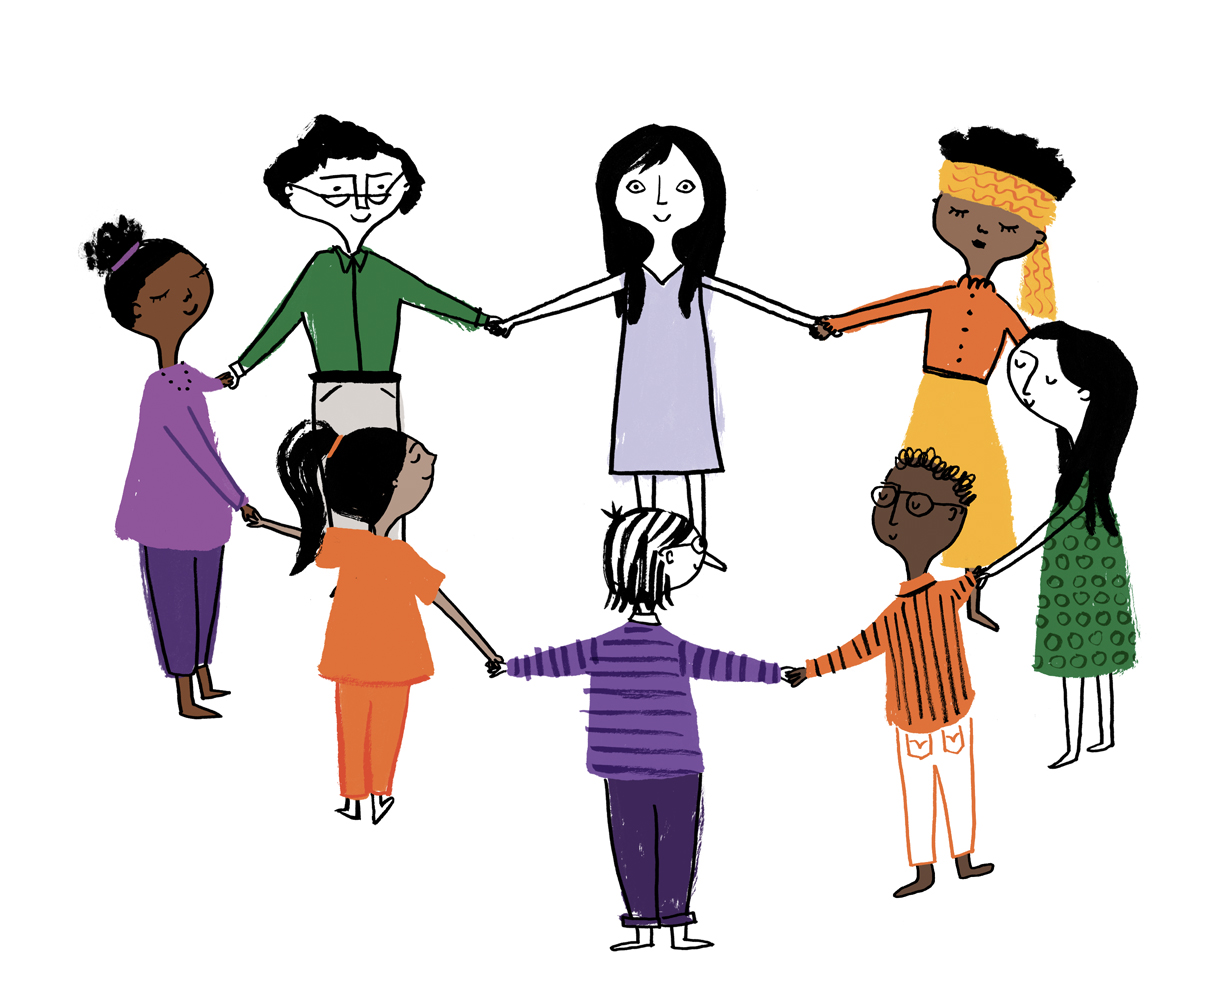 Illustration of a group of people of different backgrounds, holding hands contentedly